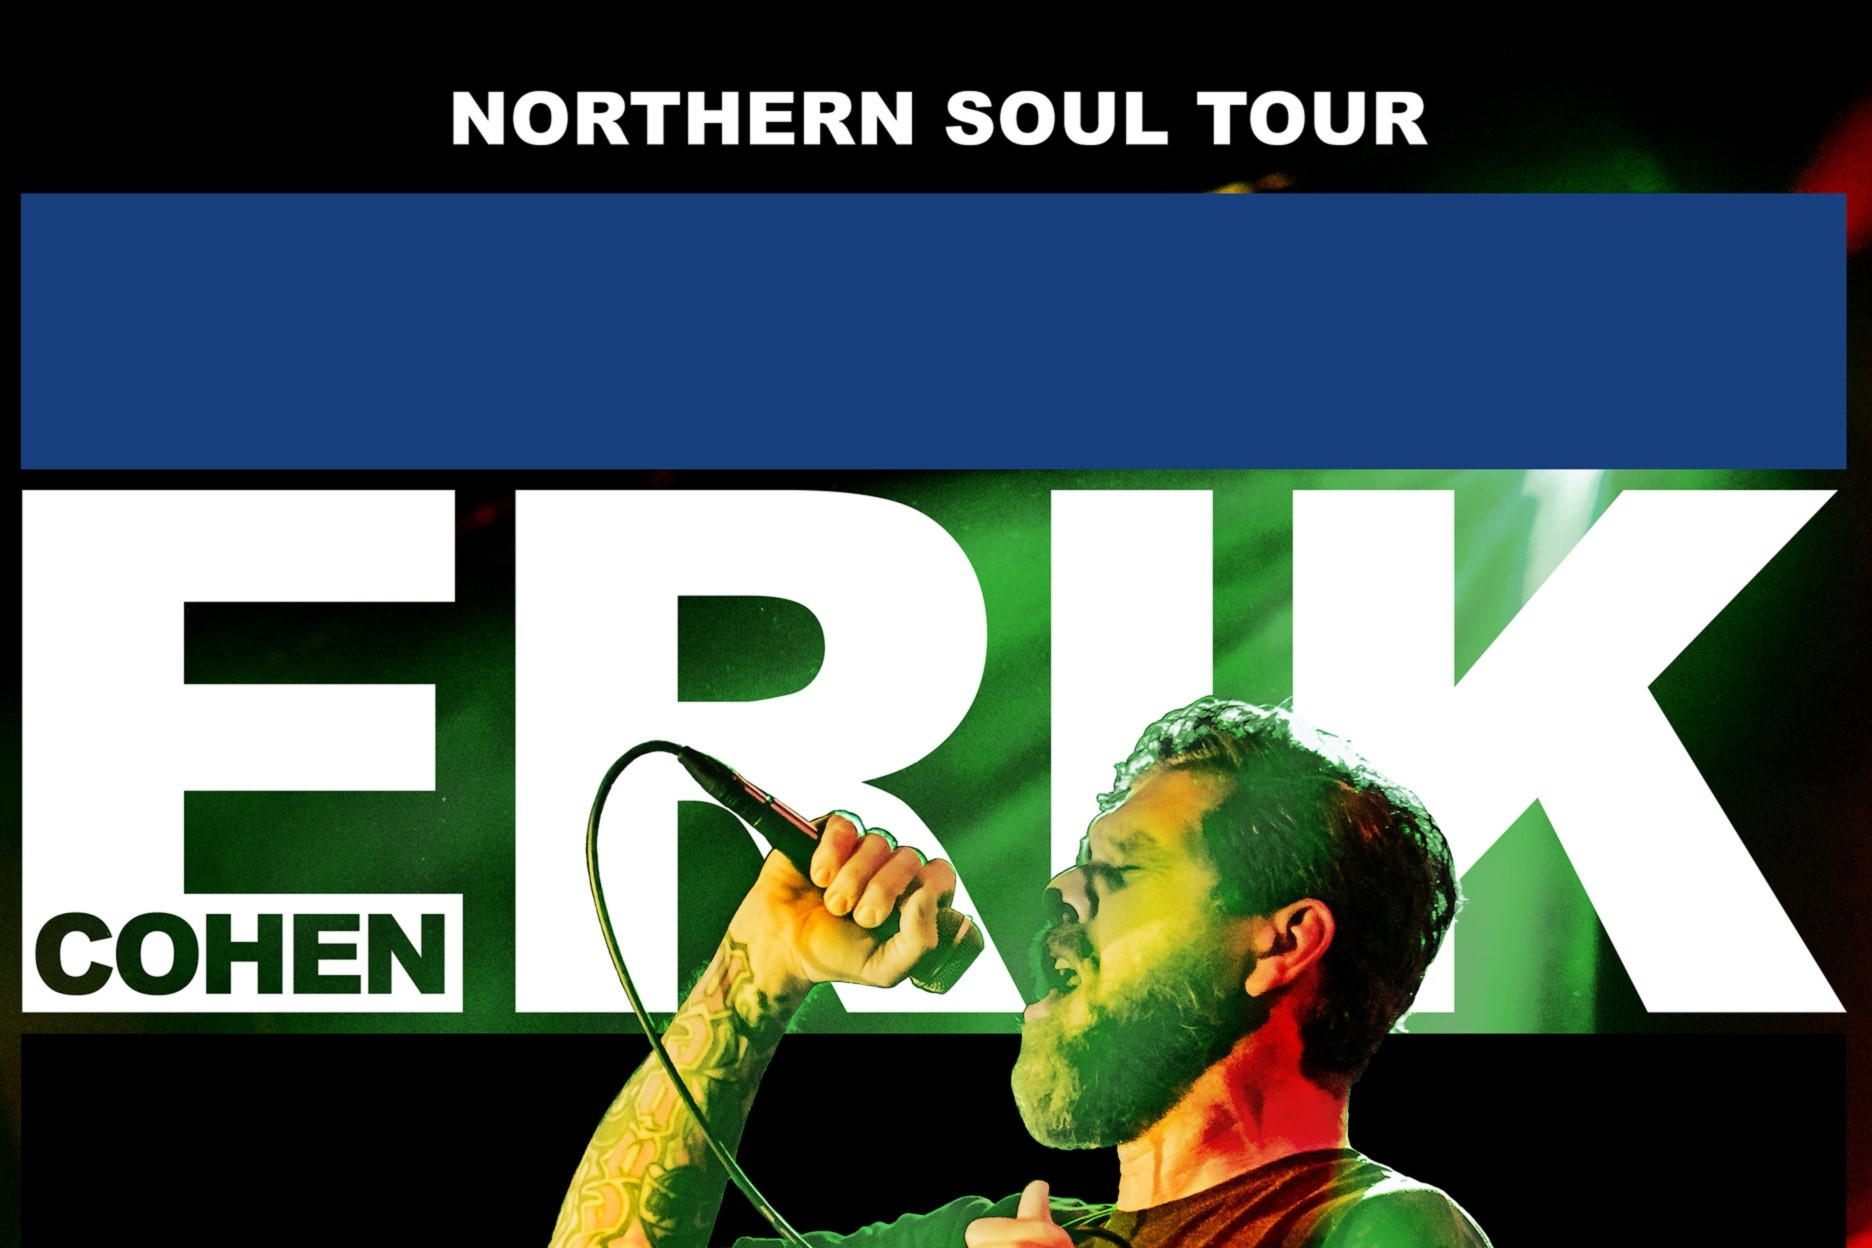 Erik Cohen - Northern Soul Tour 2022